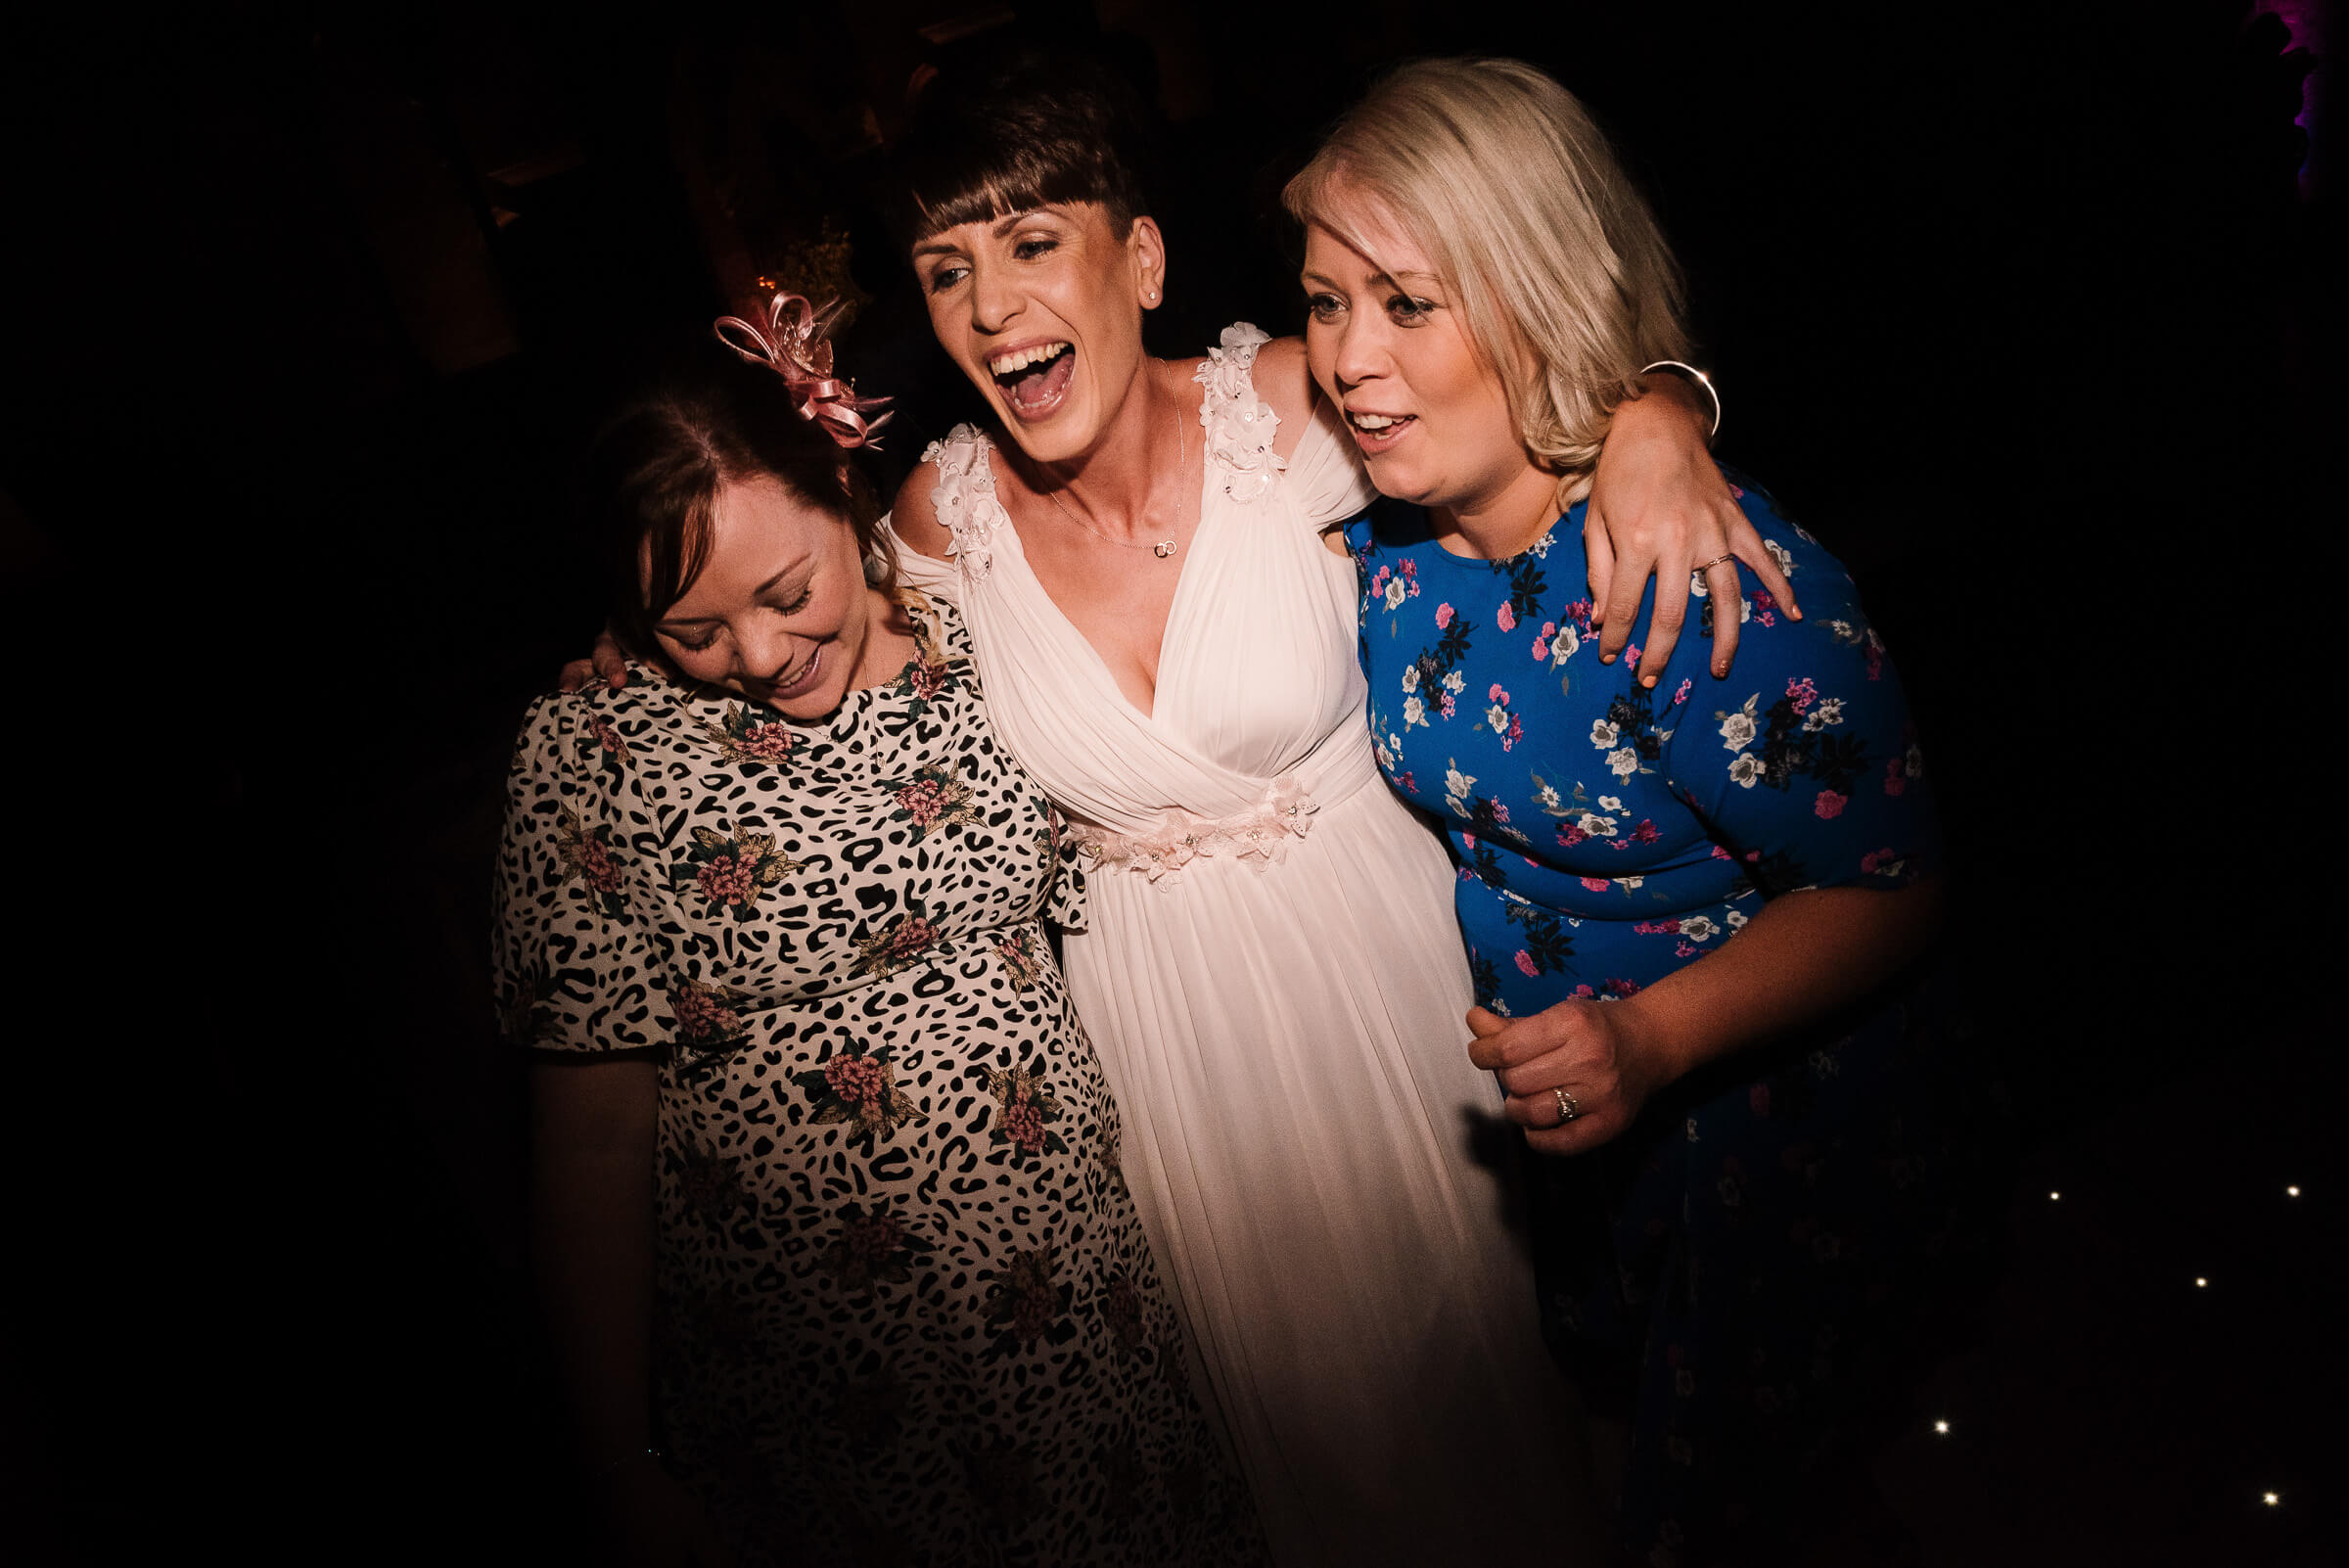 brides sister smiling with friends on dancefloor